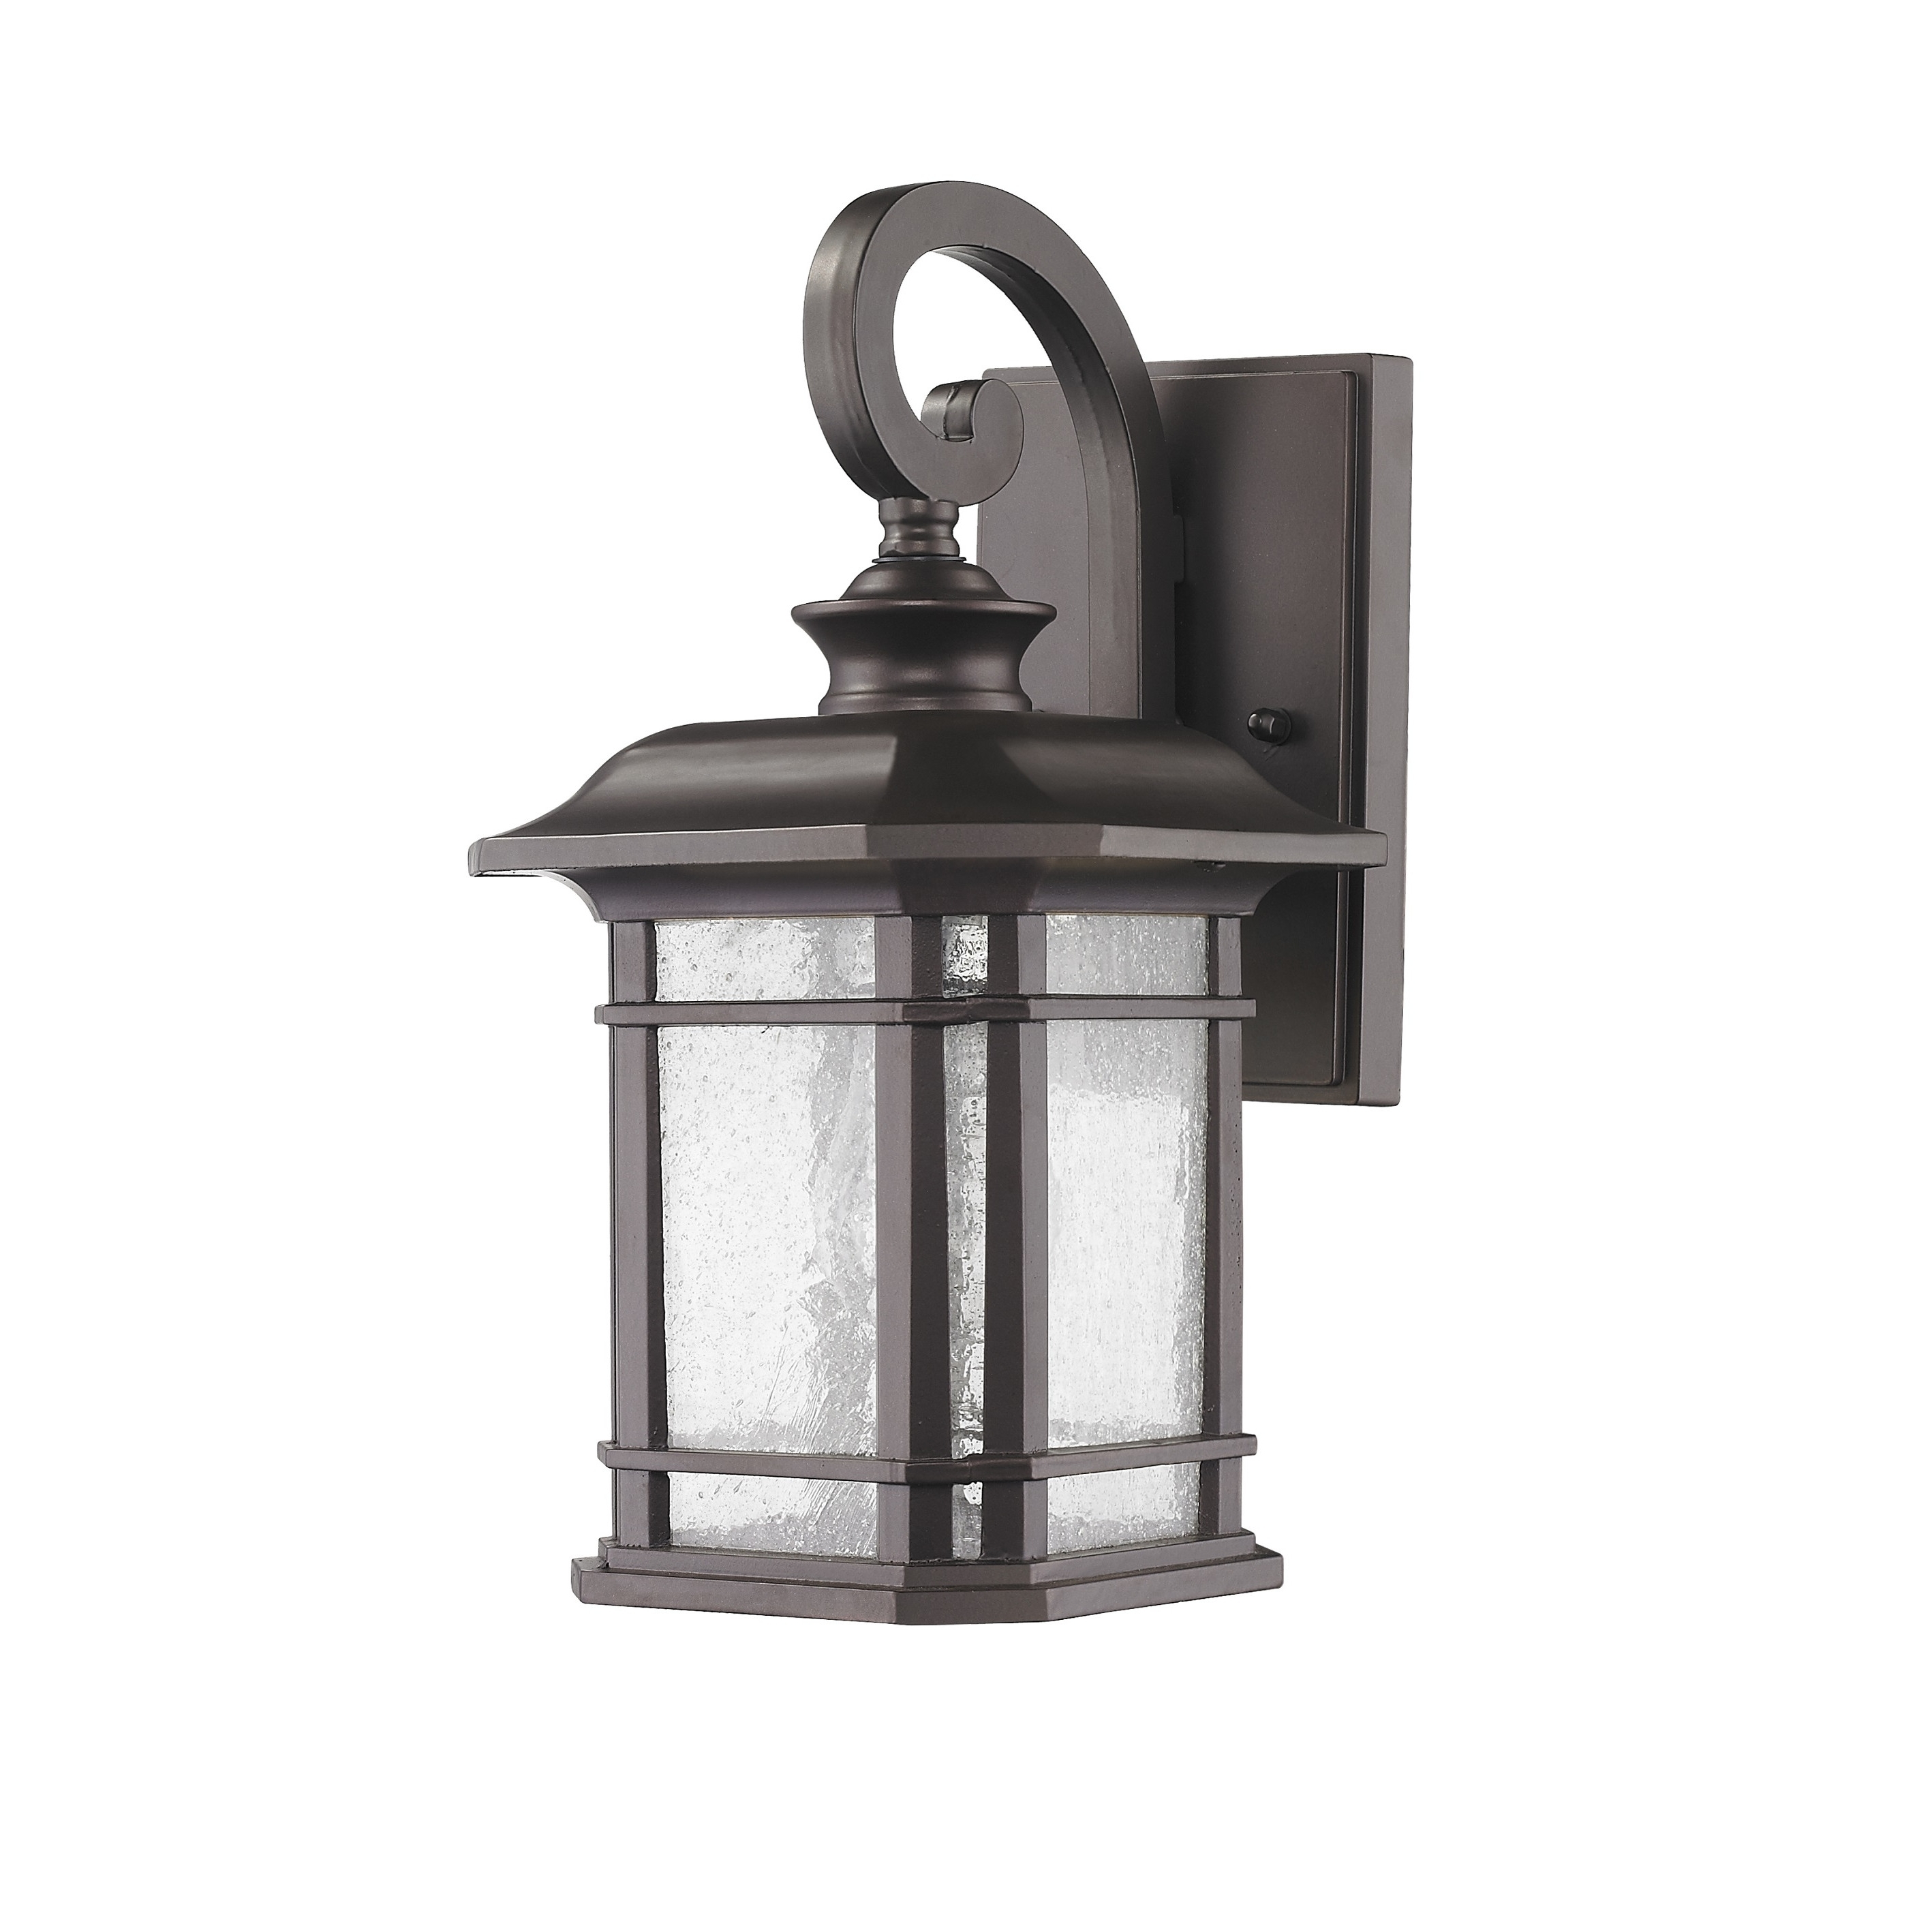 Outdoor Wall Lighting Wayfair Transitional 1 Light Lantern ~ Loversiq With Regard To Most Recently Released Modern Garden Porch Light Fixtures At Wayfair (View 3 of 20)